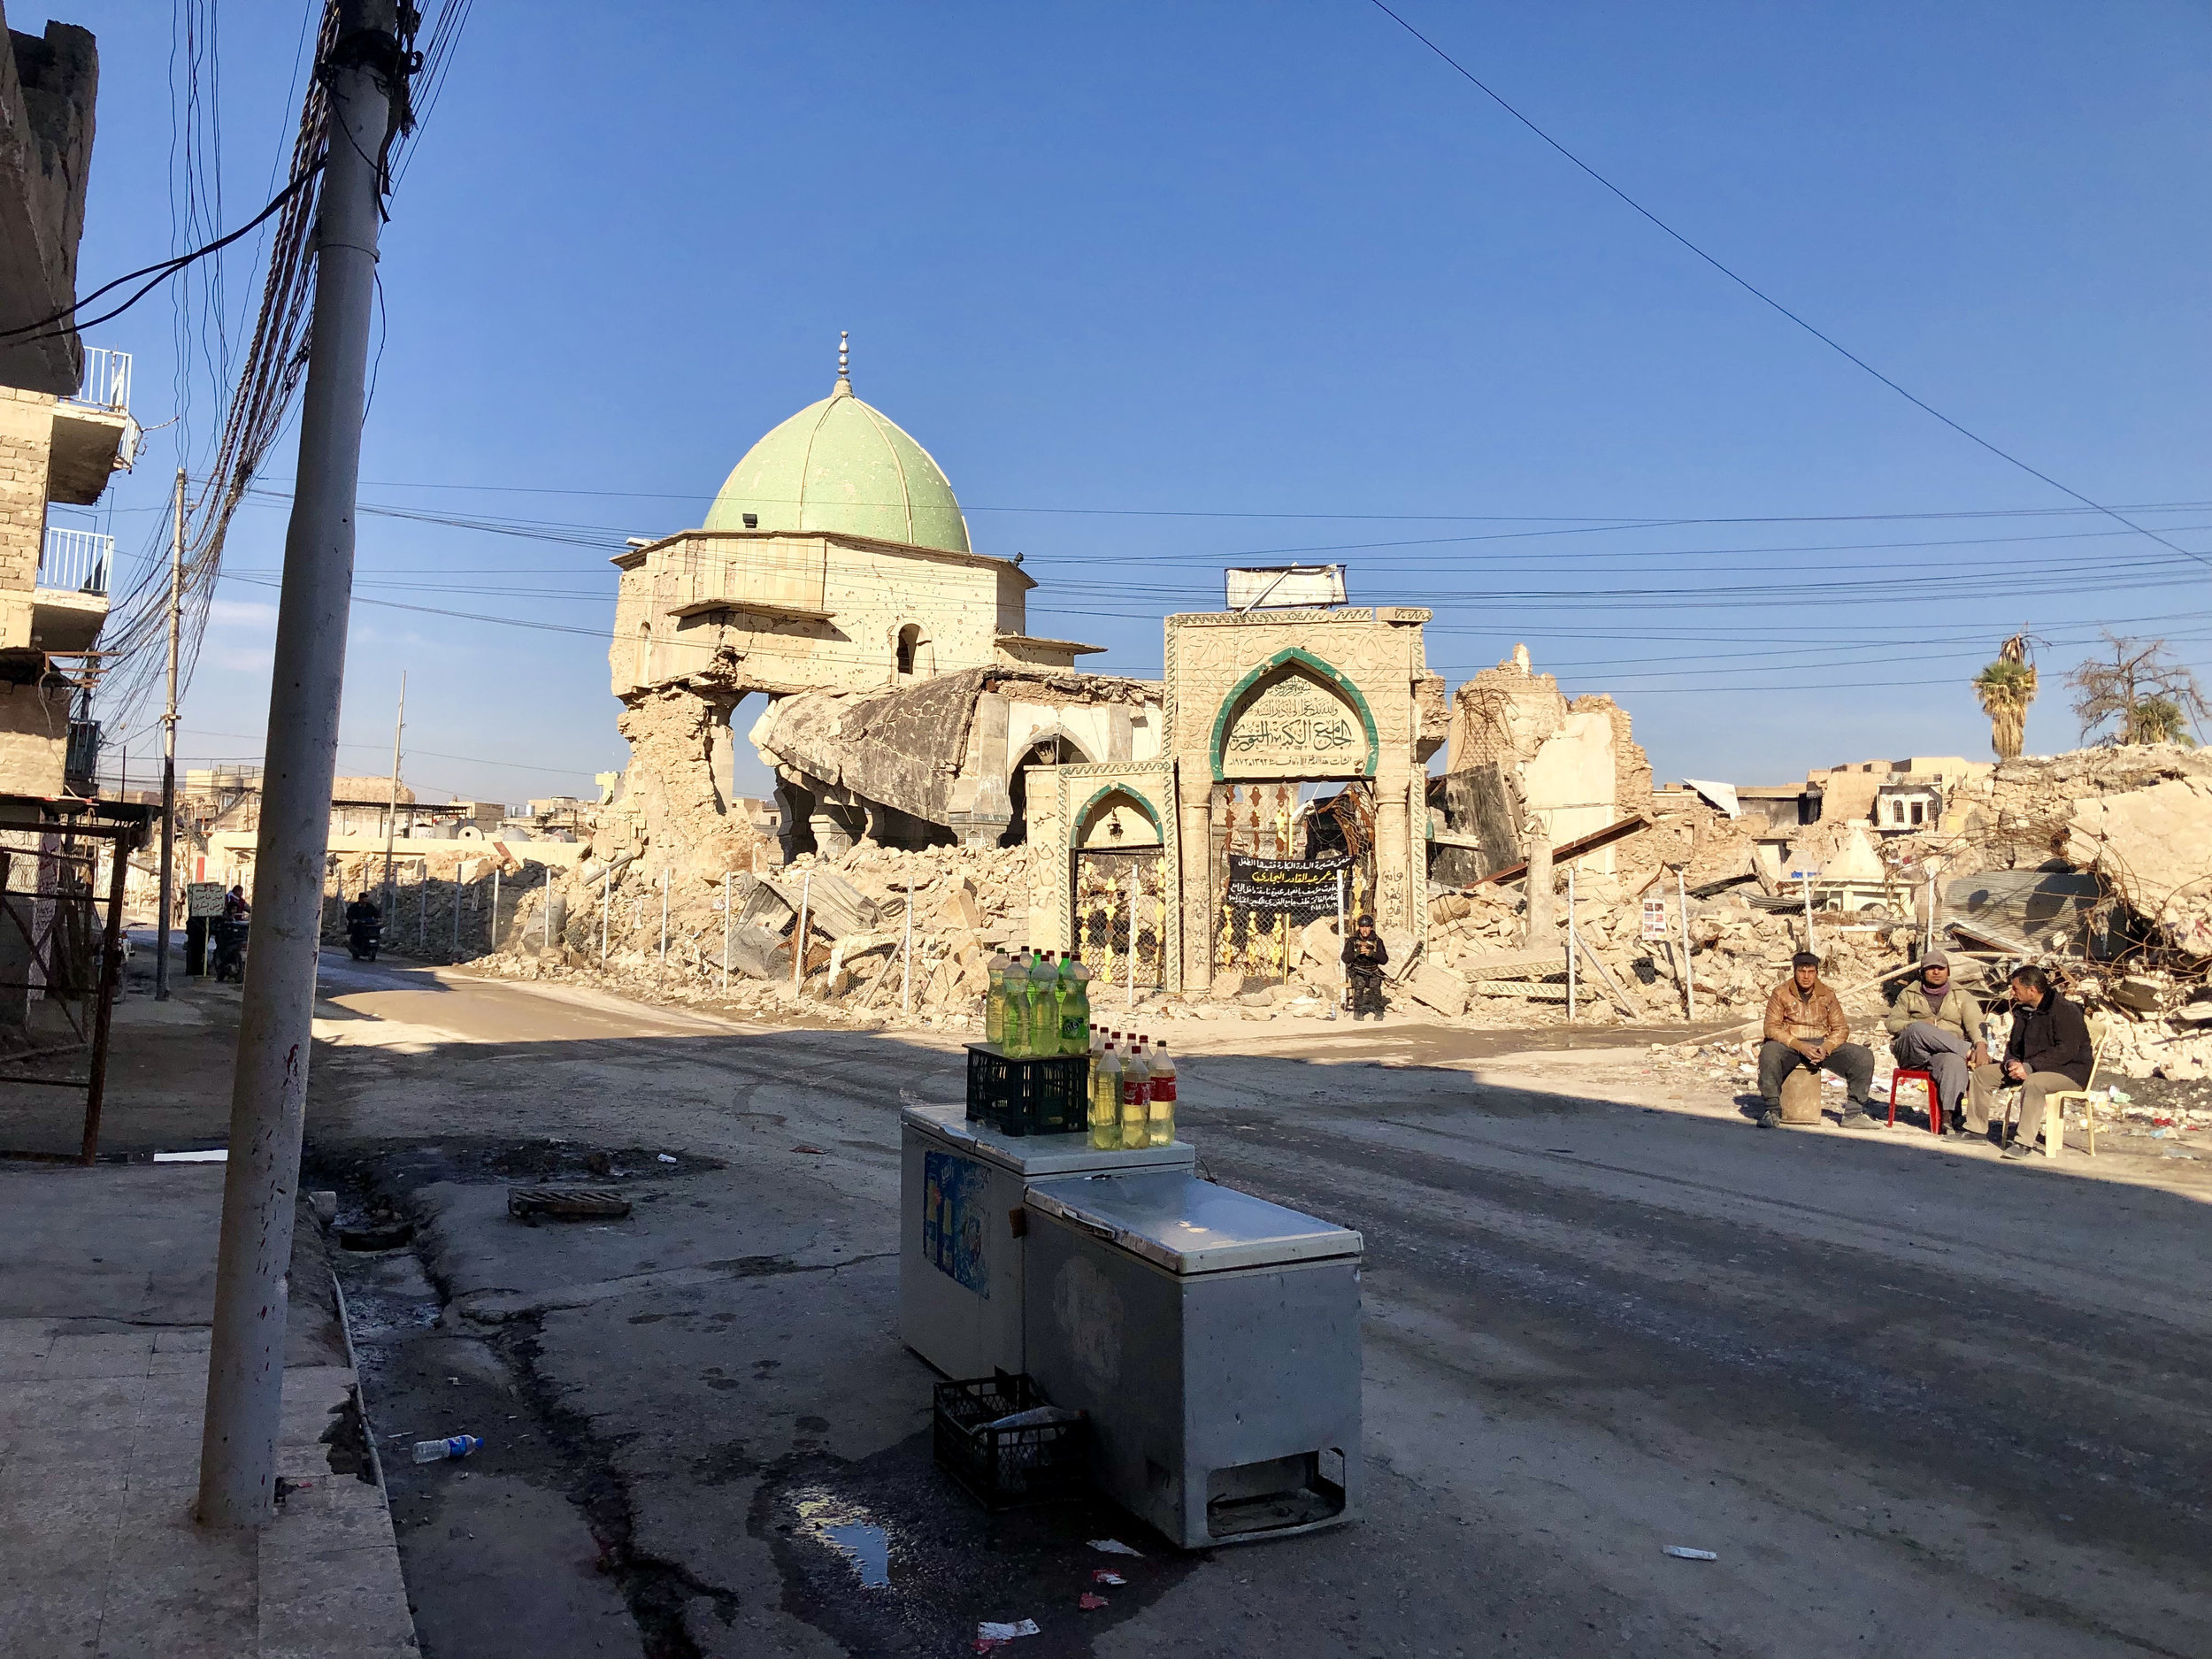 The Great Mosque of al-Nuri, where ISIS declared their caliphate (the belief in a single world government), in Mosul's Old City. November, 2018. (Rebecca Gibian)